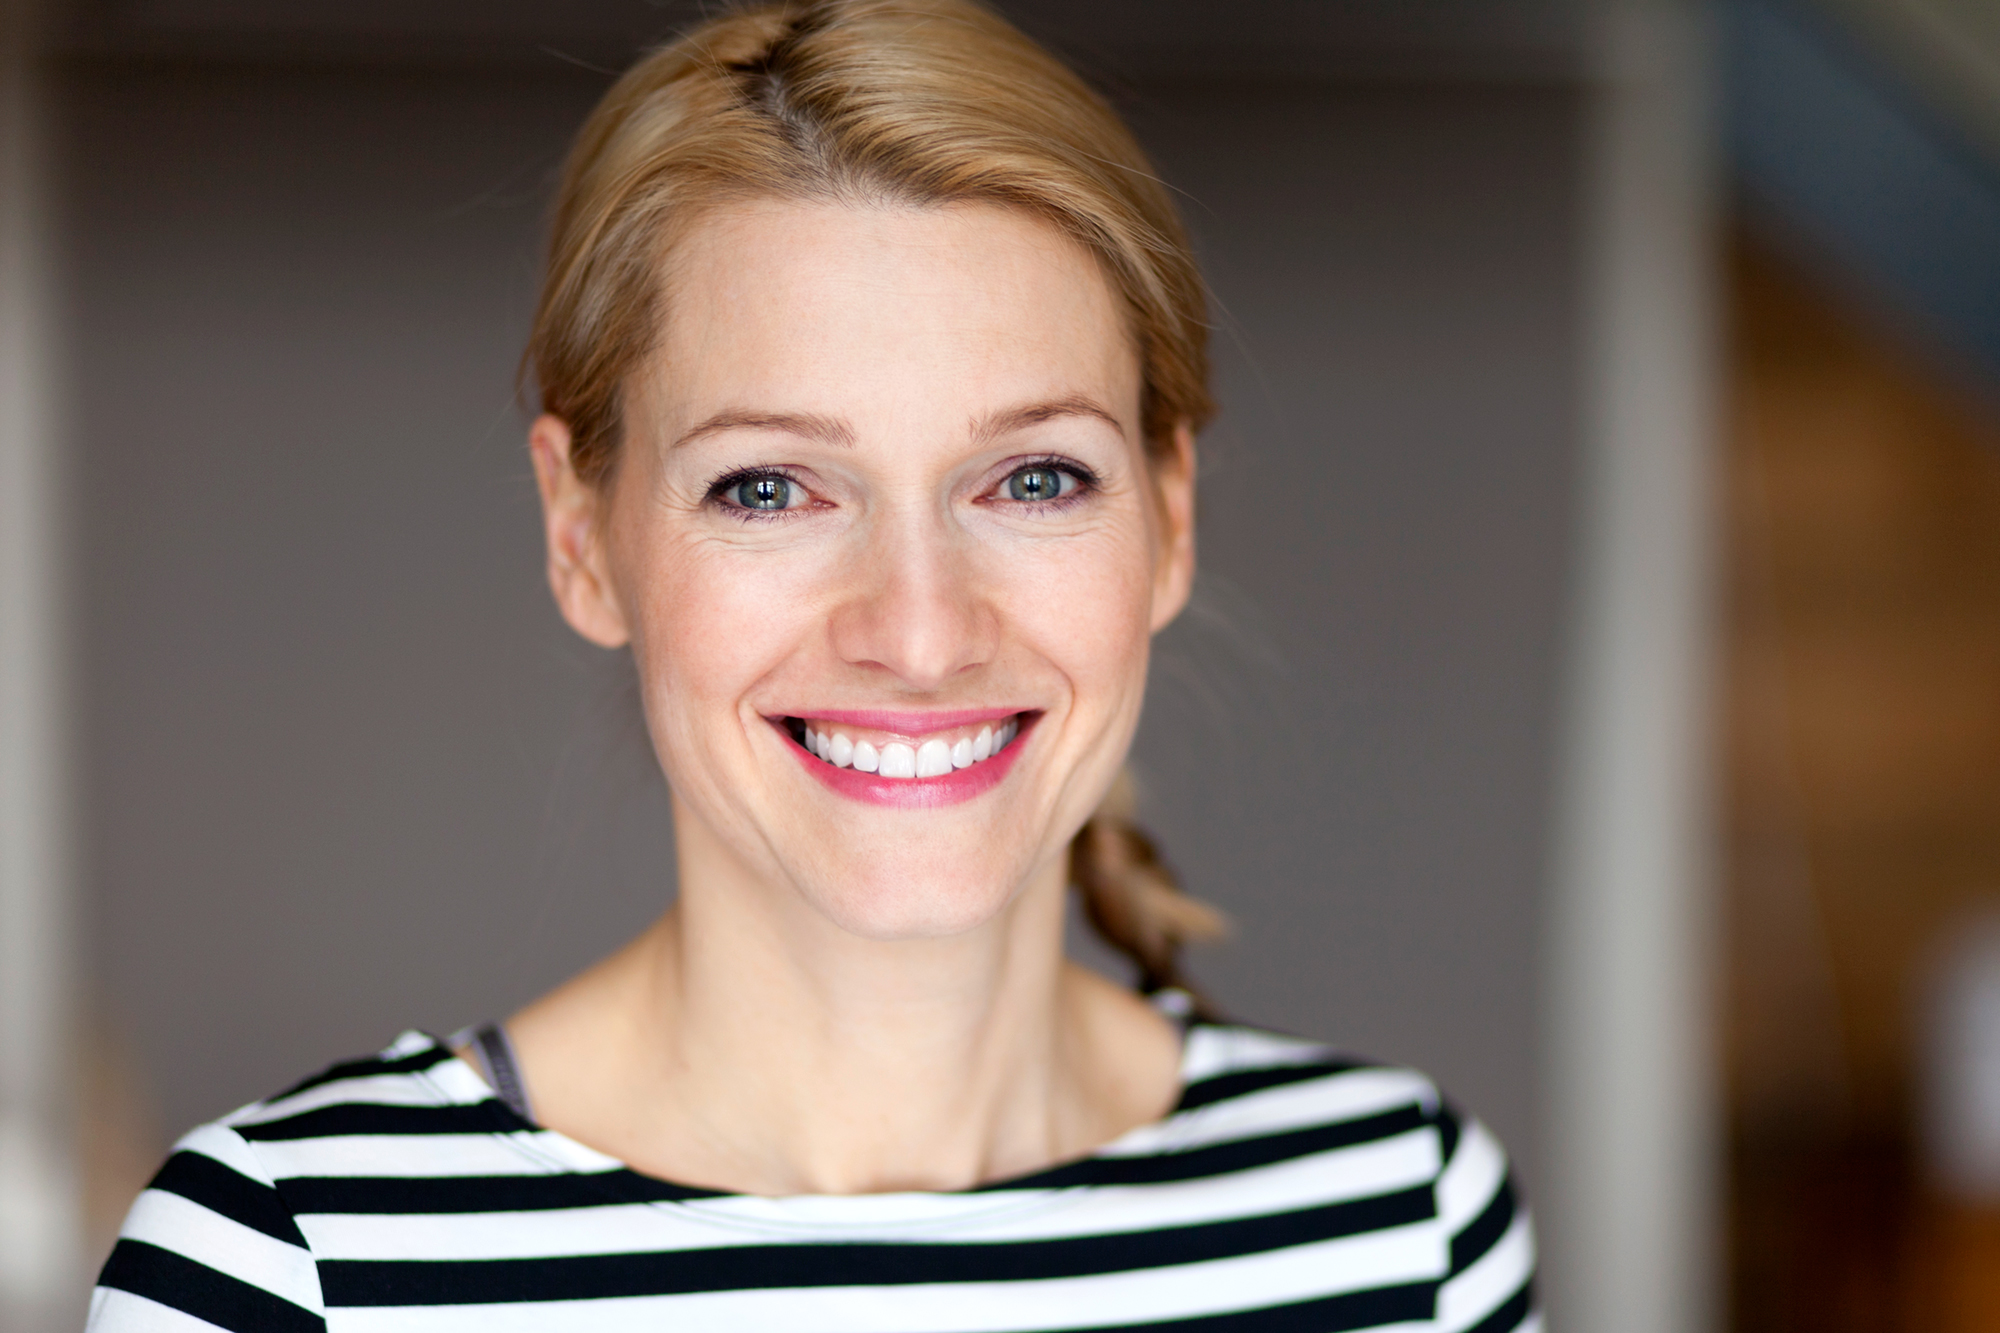 portrait of woman with blonde hair smiling and wearing a black and white striped shirt